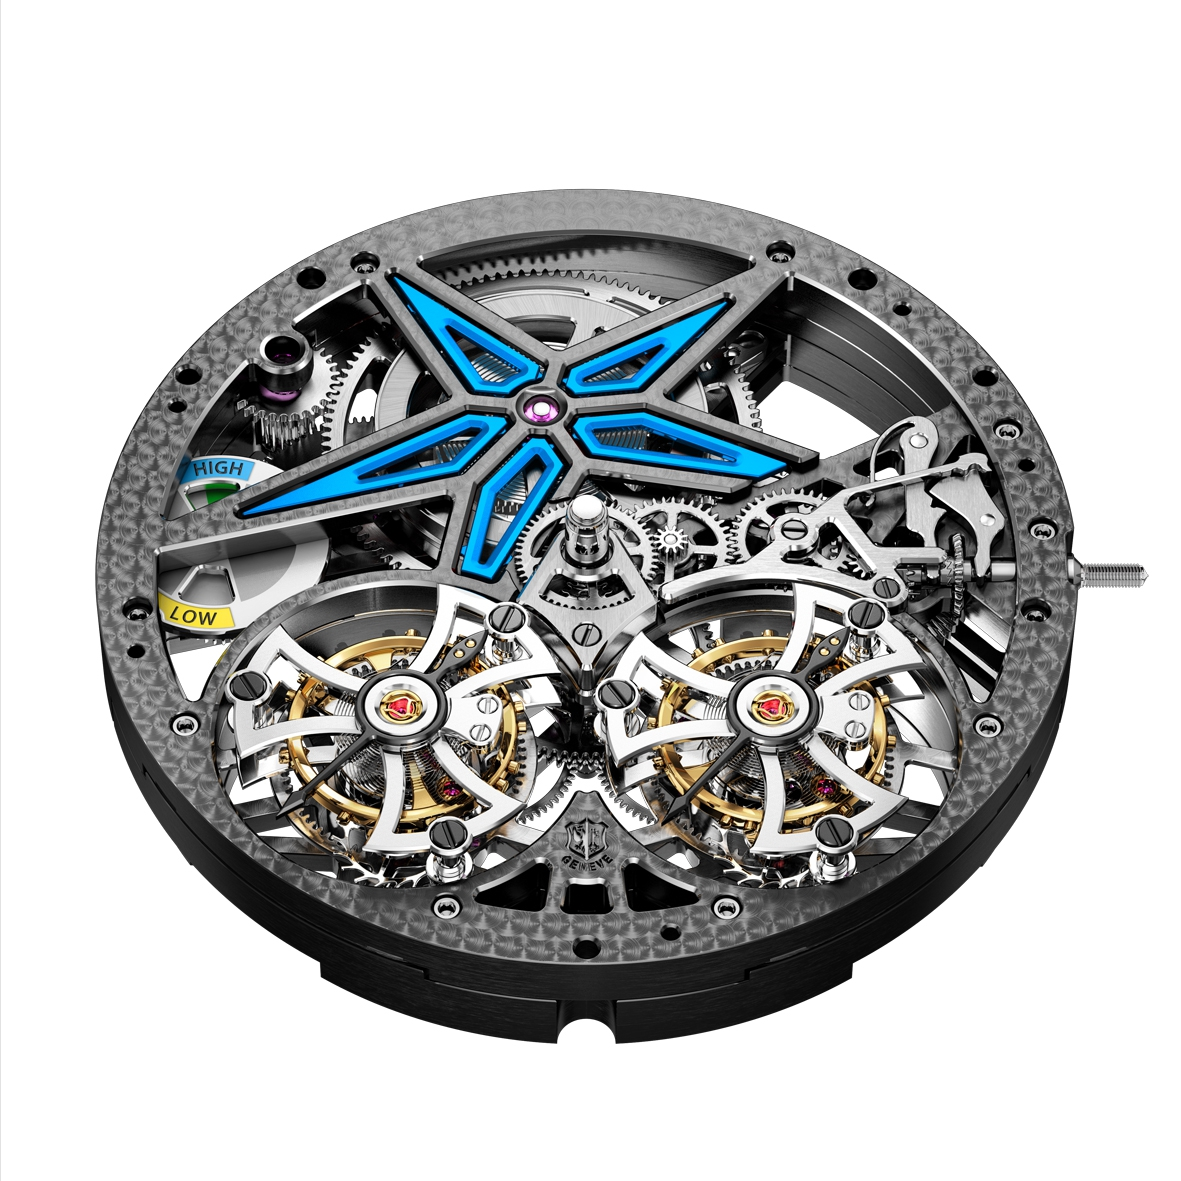 Excalibur Spider Pirelli – Double Flying Tourbillon movement